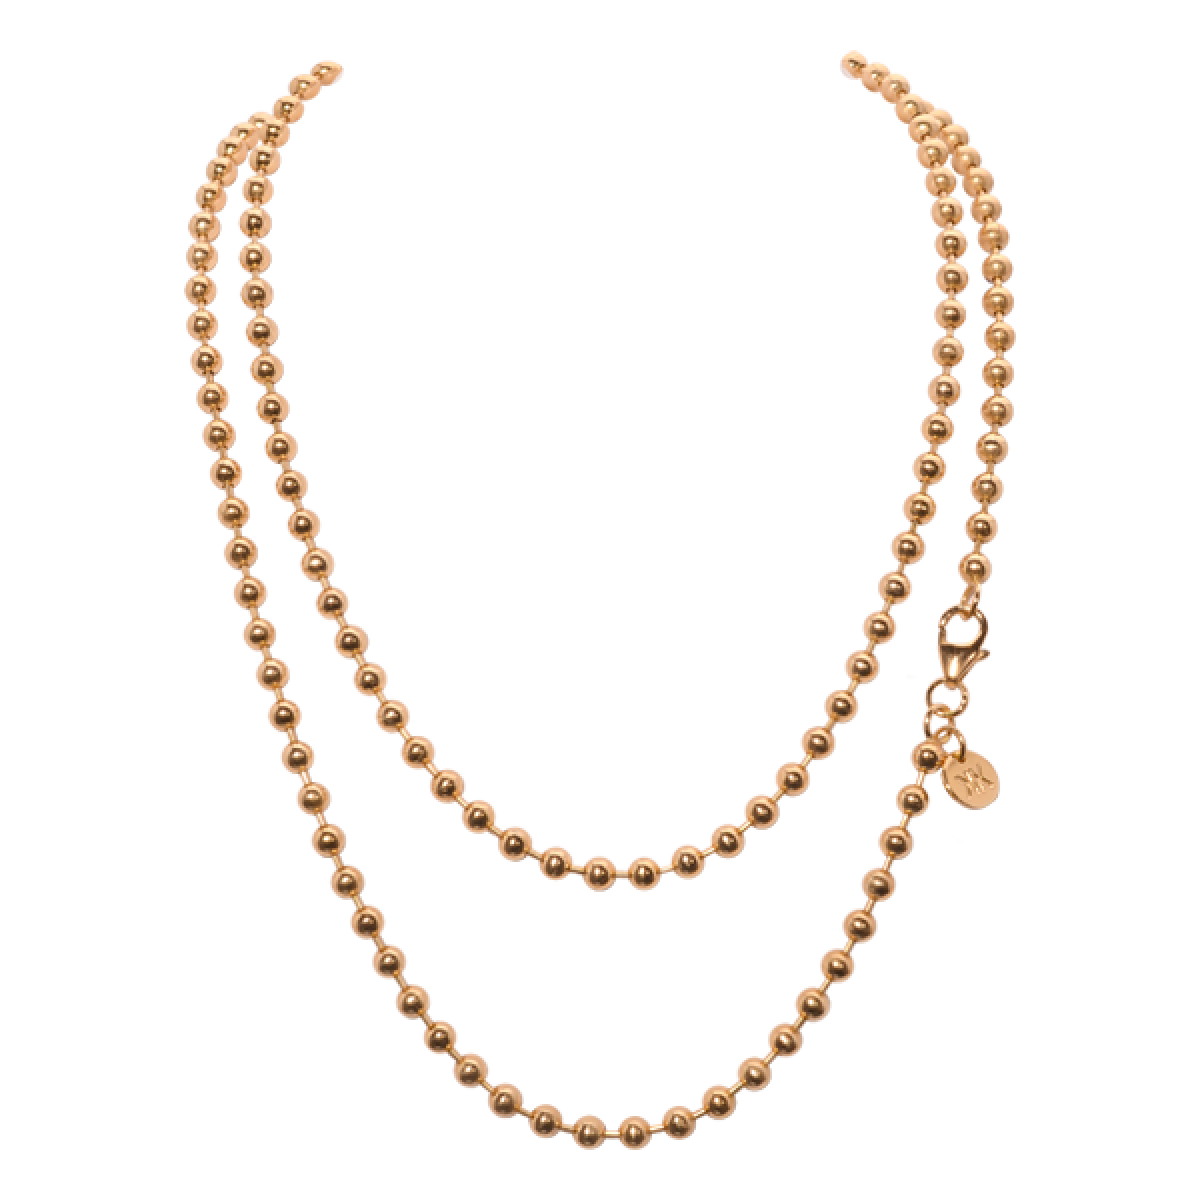 Jewellery Chain PNG HD